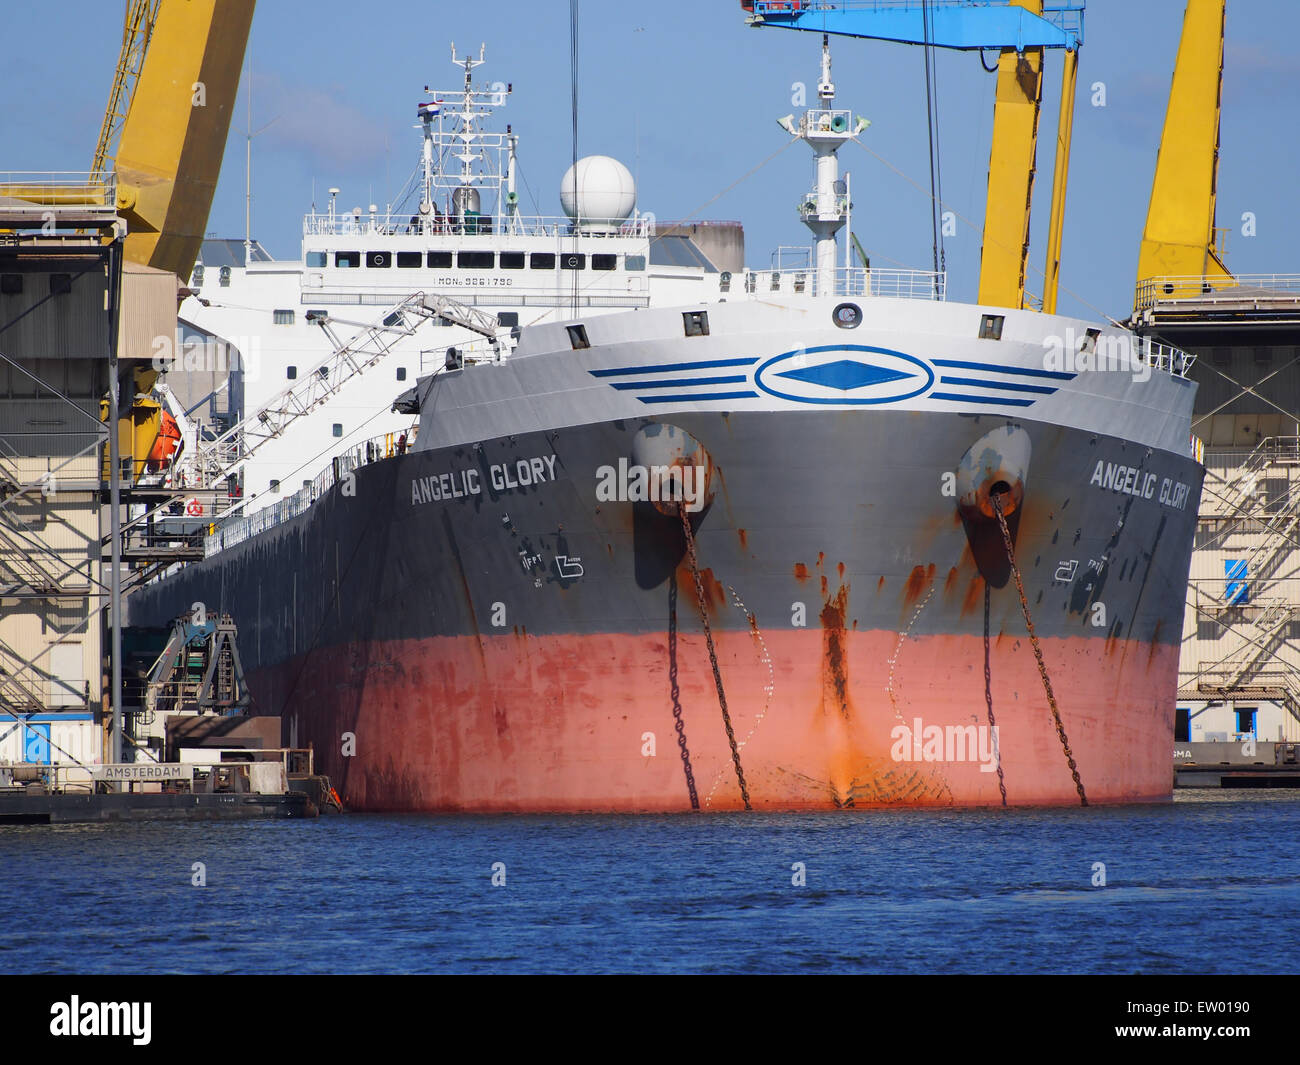 Angelic Glory - IMO 9261798 - Callsign SVCT, Vlothaven, Port of Amsterdam, pic2 - Stock Image